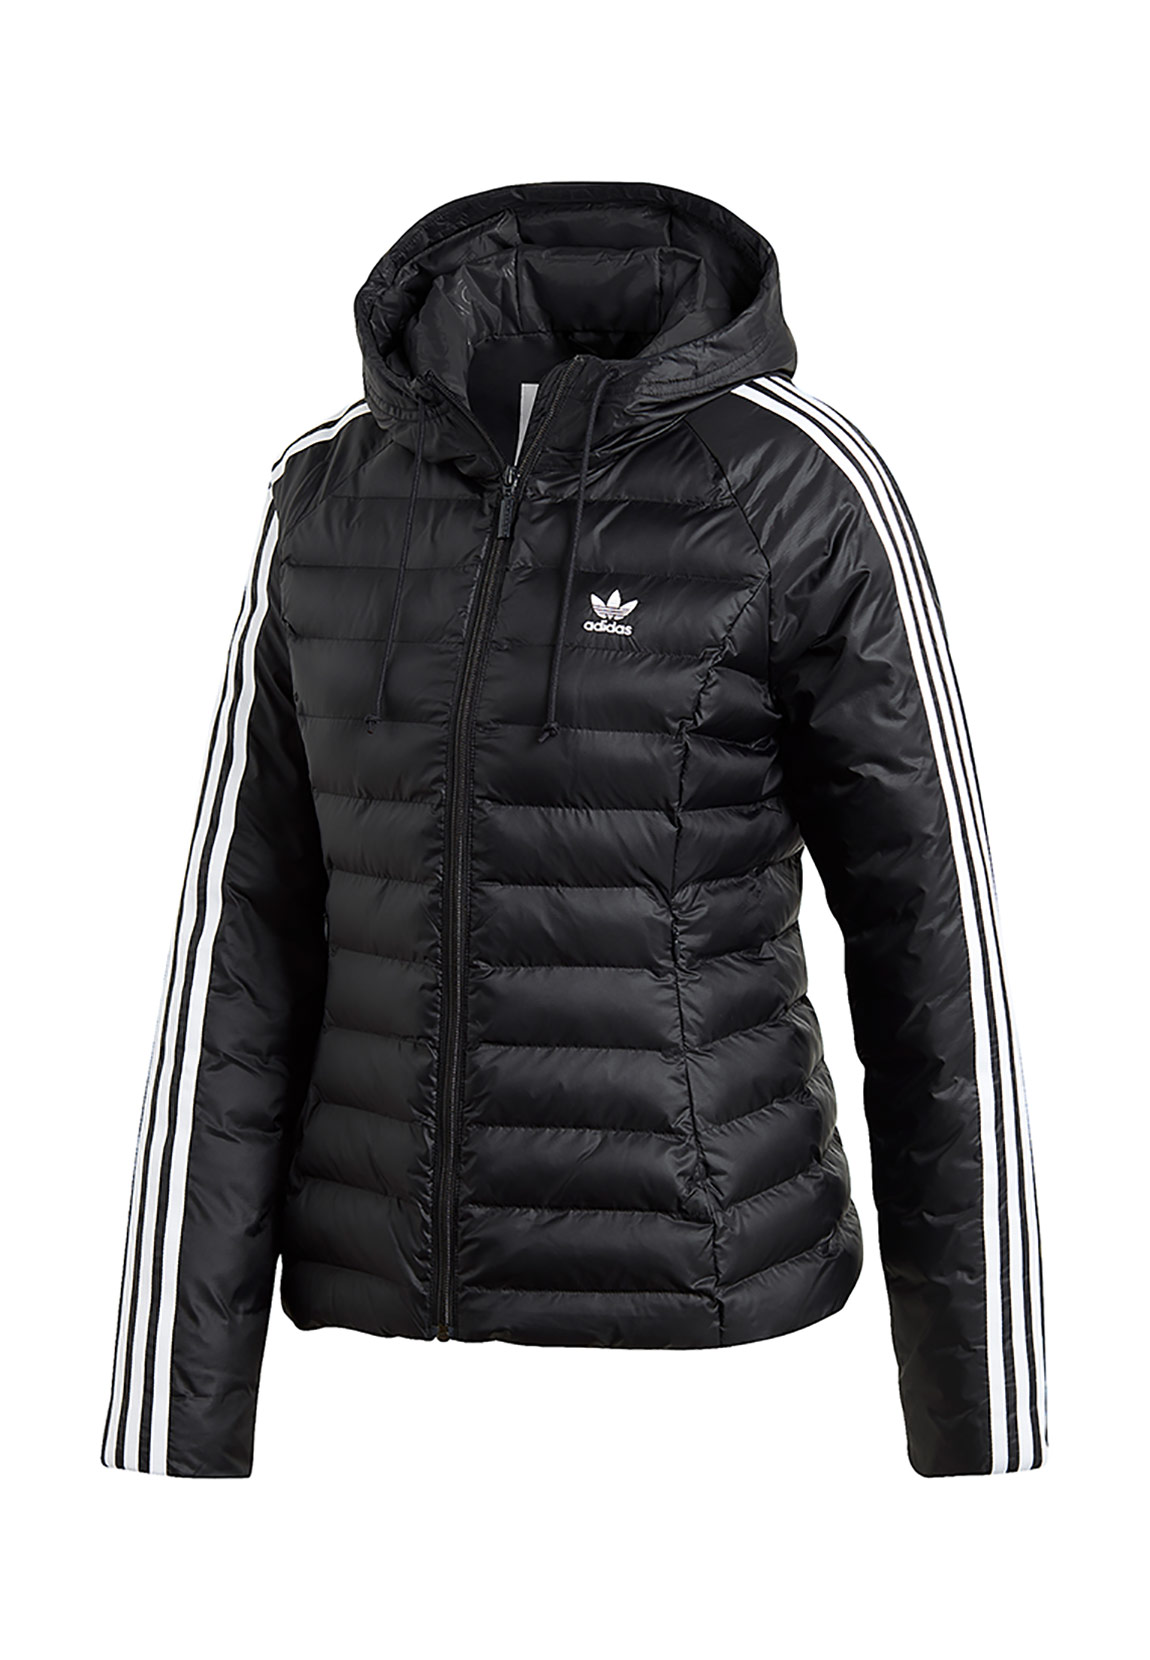 multiple colors uk store on sale Details zu Adidas Originals Jacke Damen SLIM JACKET ED4784 Schwarz